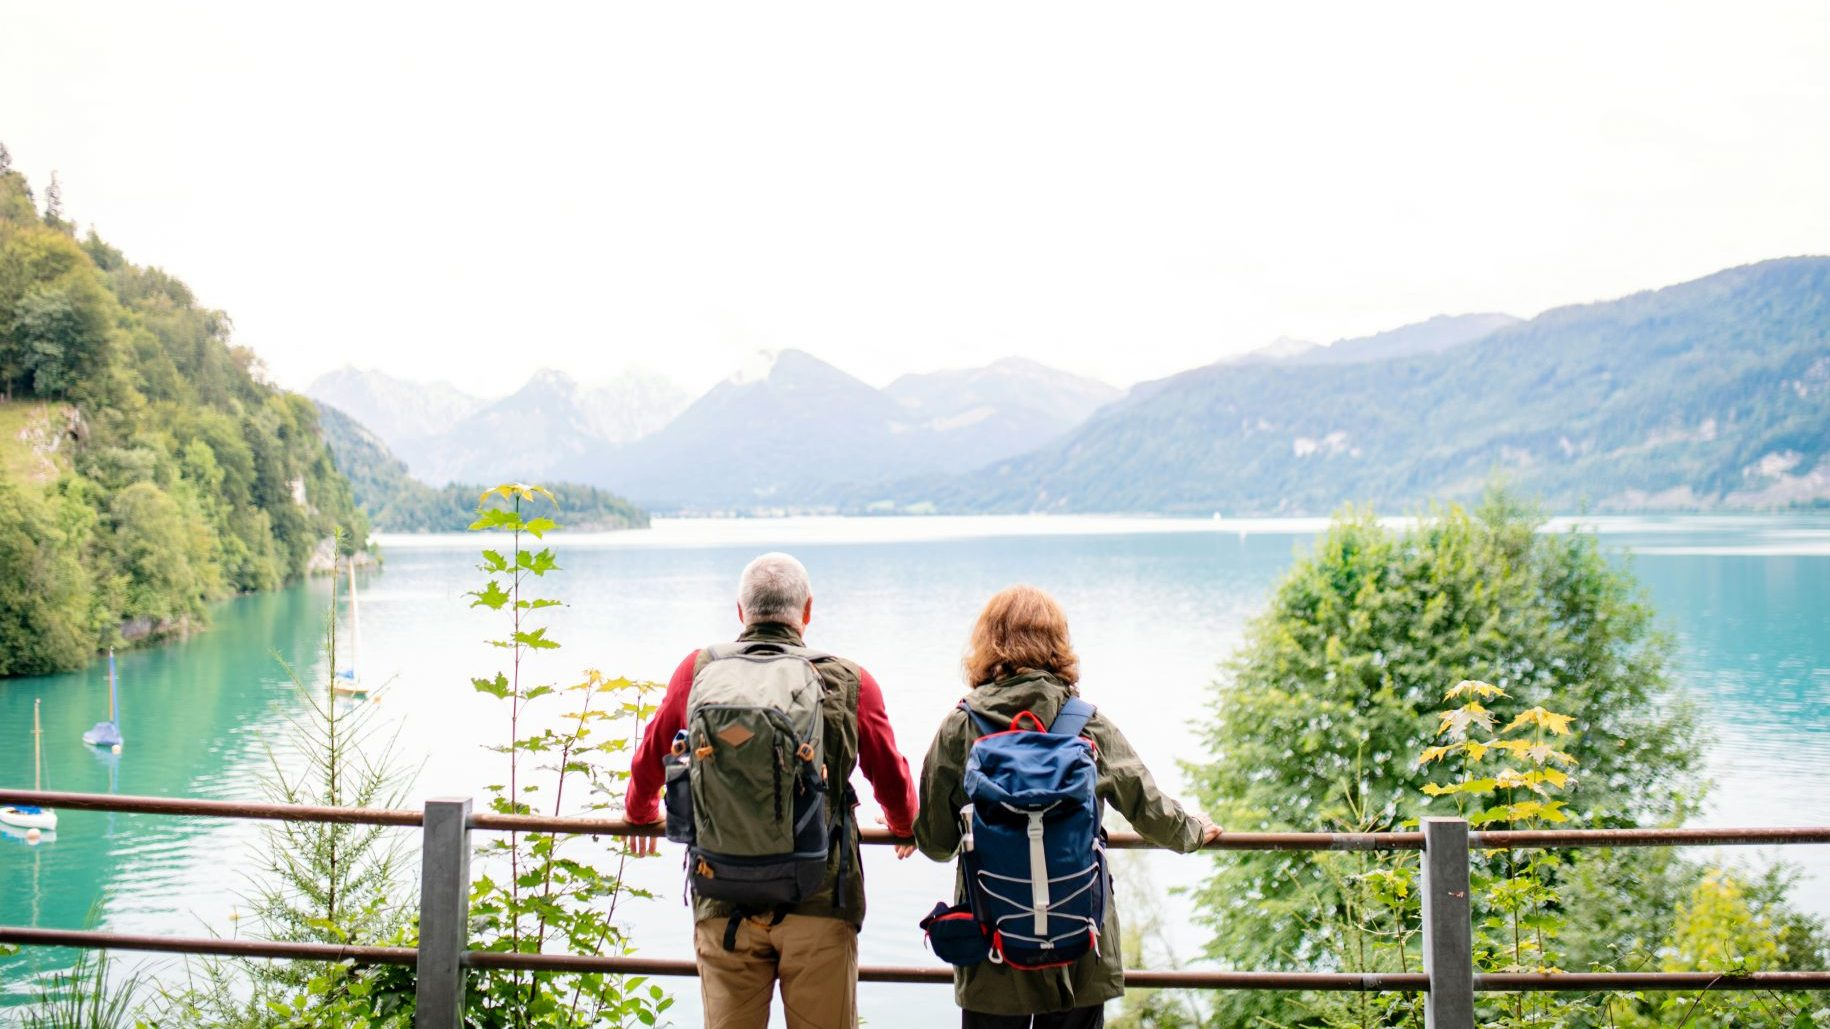 retired-man-and-woman-travelling-world-sightseeing-mountains